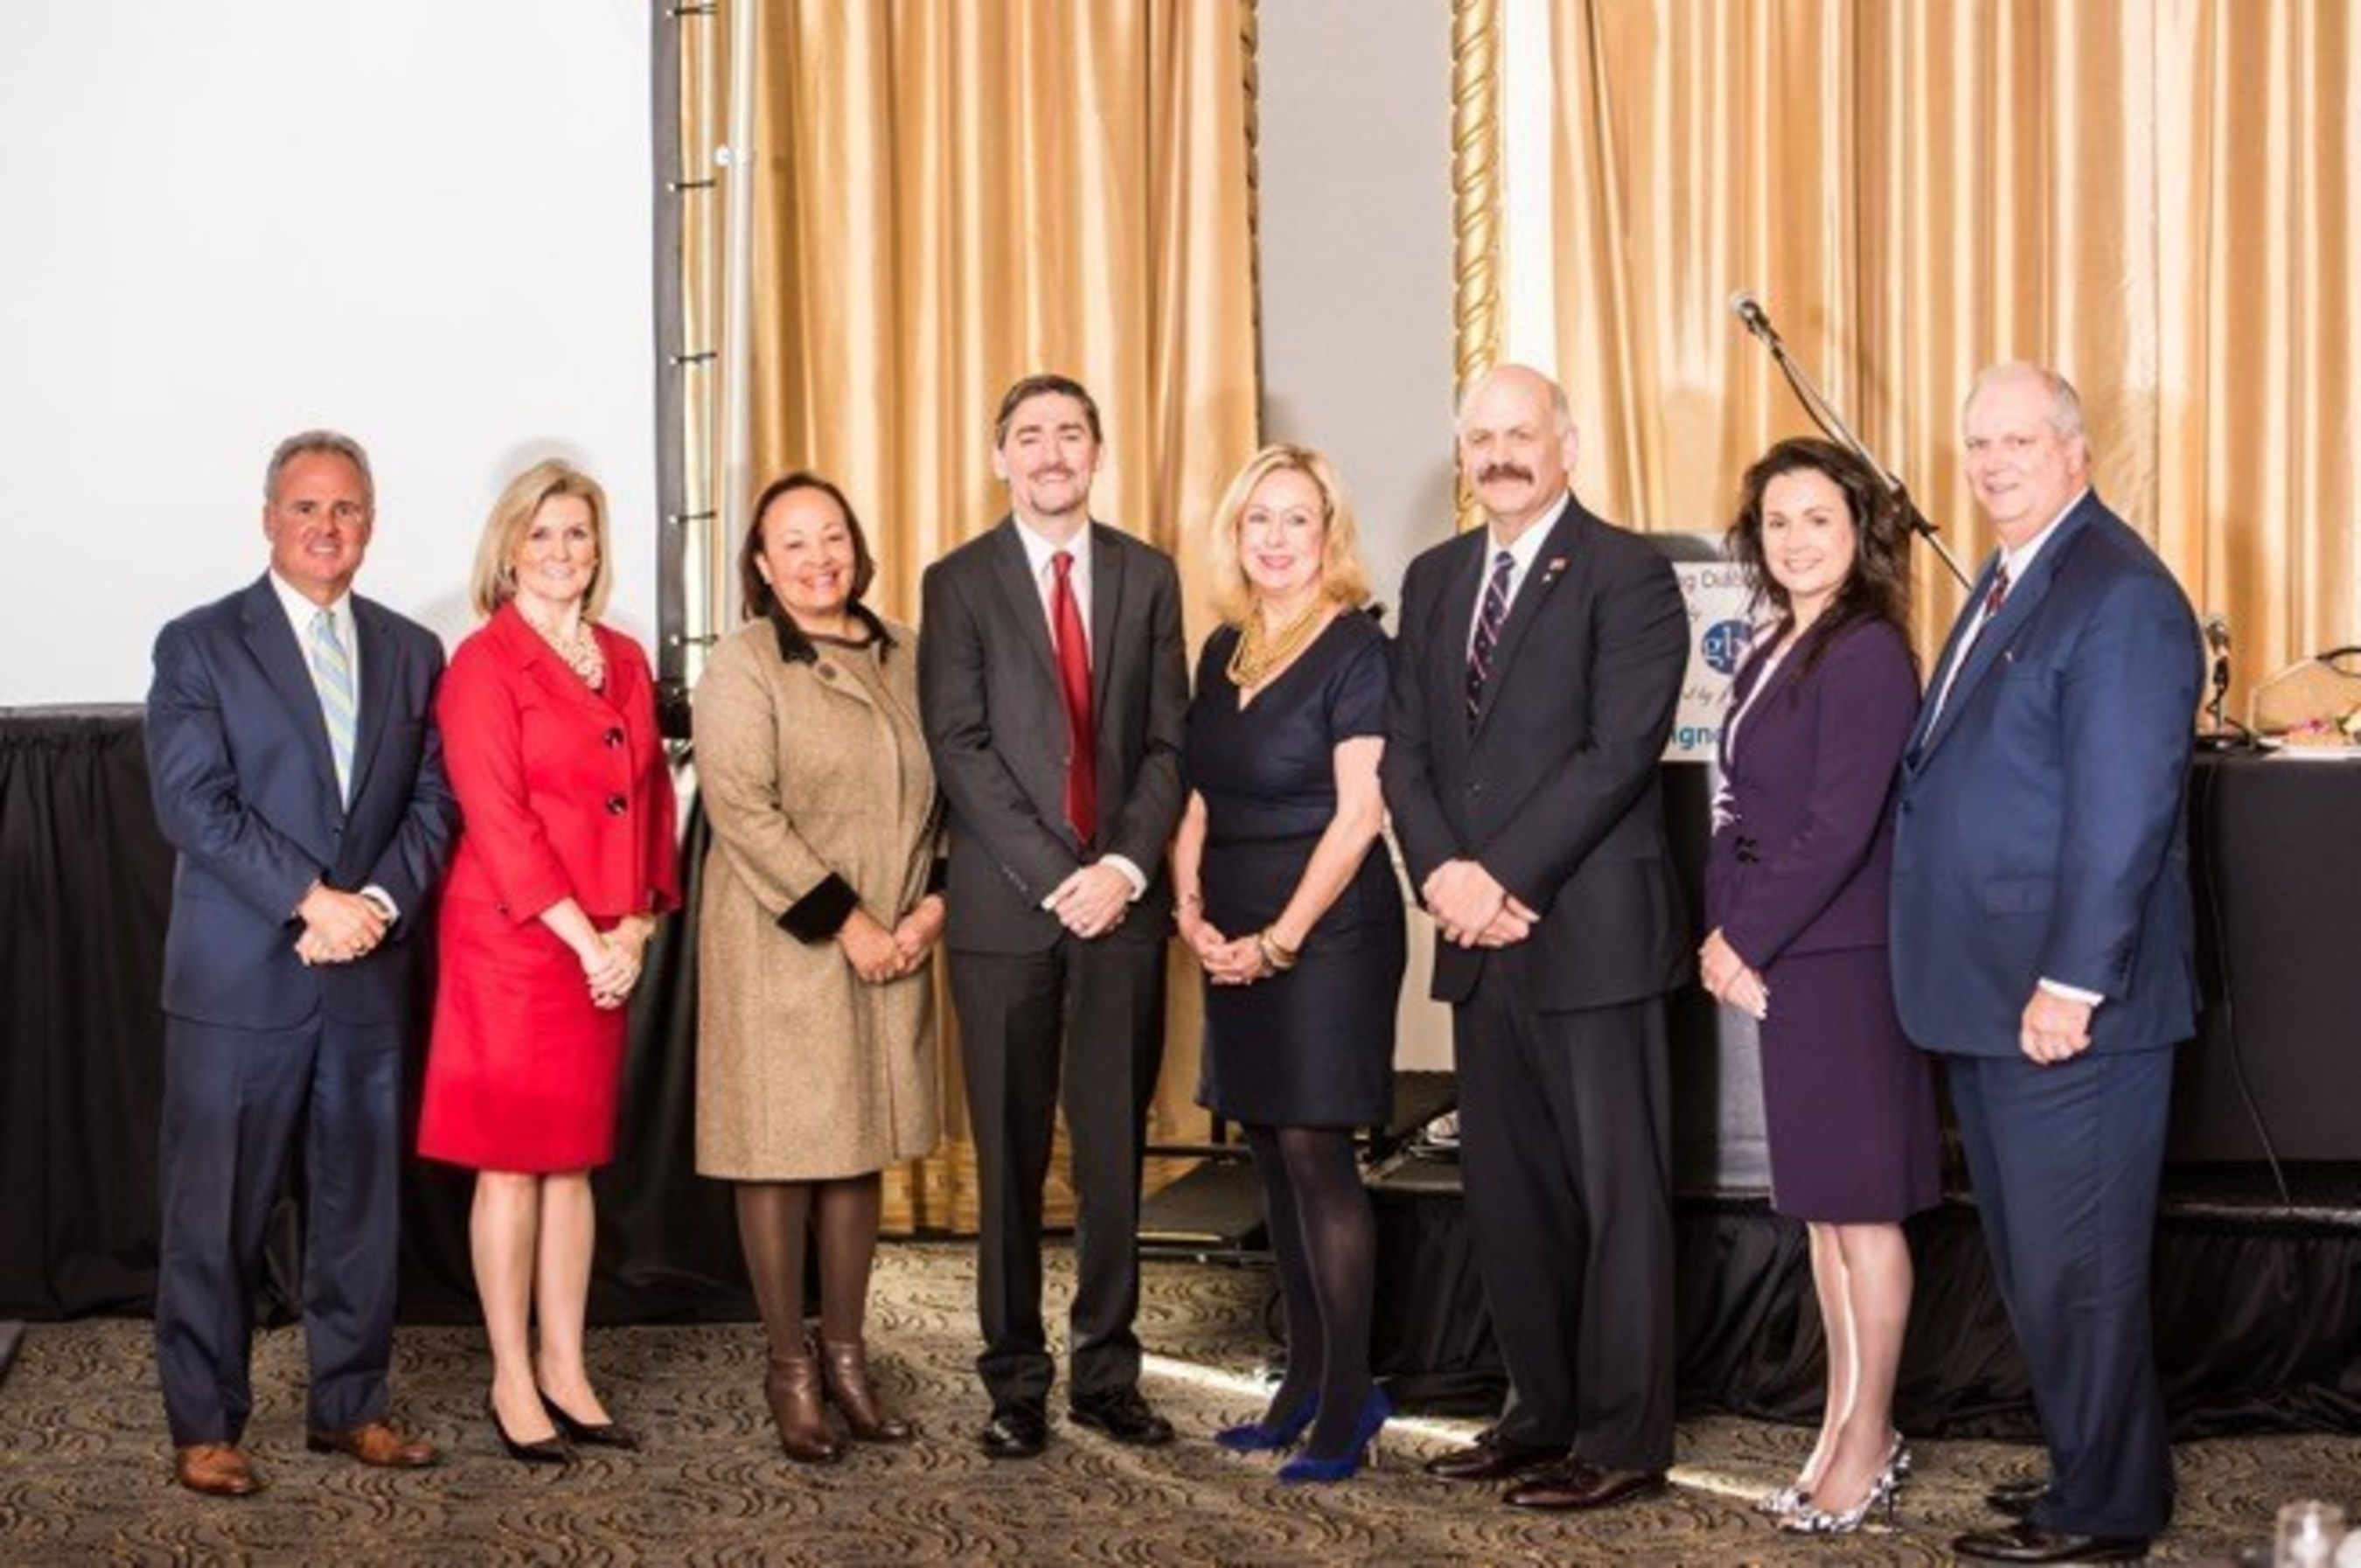 (From L-R) Frank Kelly III, CEO, Kelly & Associates Insurance Group; Christine Aspell, Managing Partner, KPMG; Geraldine Diggs, Founder, President and CEO, WeCare Private Duty Services; David McShea, Executive Director, ADA; Barbara Clapp, CEO, Clapp Communications; Steve Edwards, Founder, Edwards Performance Solutions; Julia Higgins, President, Cigna Mid-Atlantic and Donald Fry, CEO, GBC